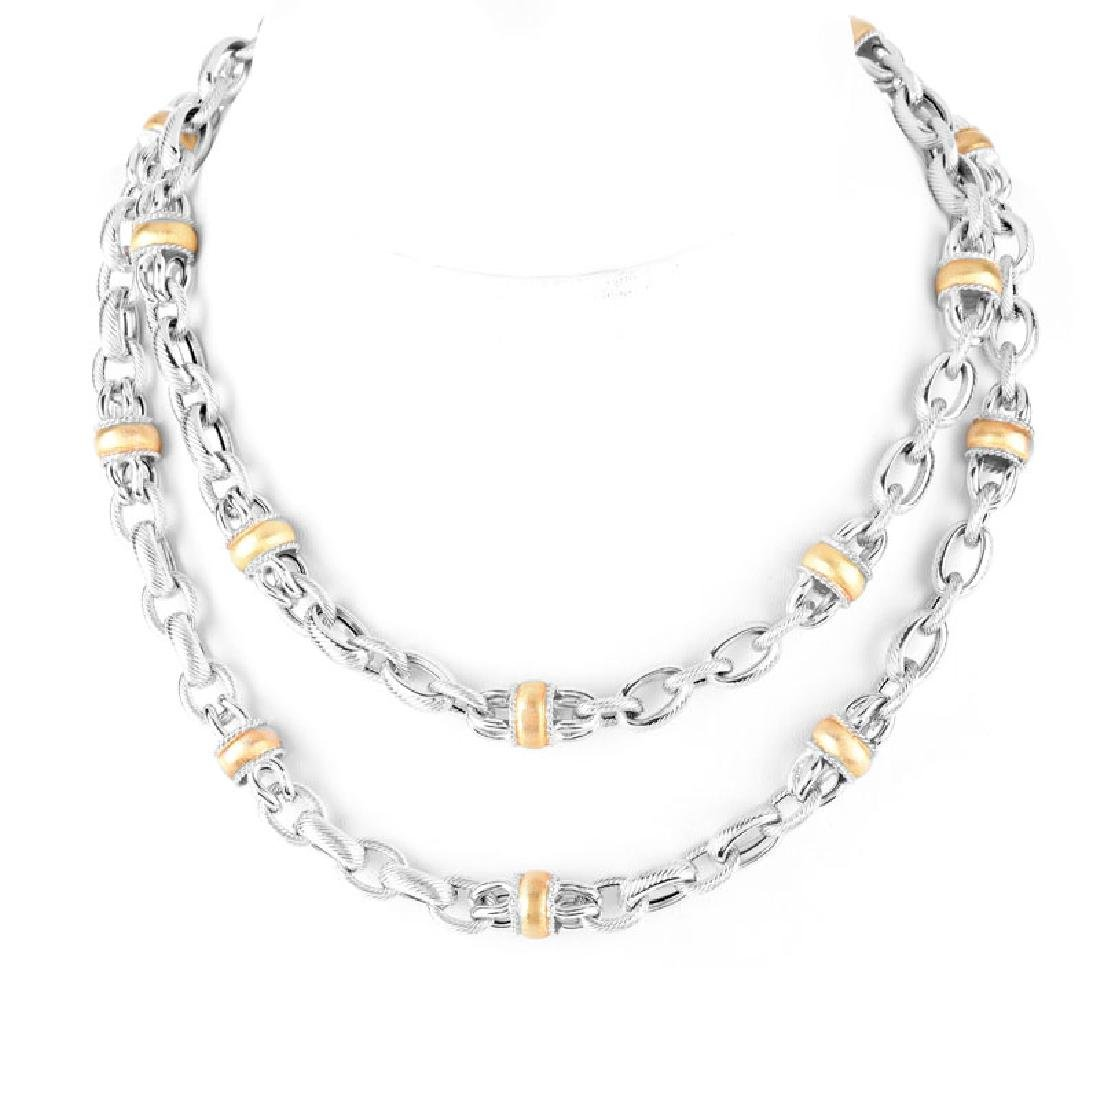 Italian 18 Karat White and Yellow Gold Long Necklace.